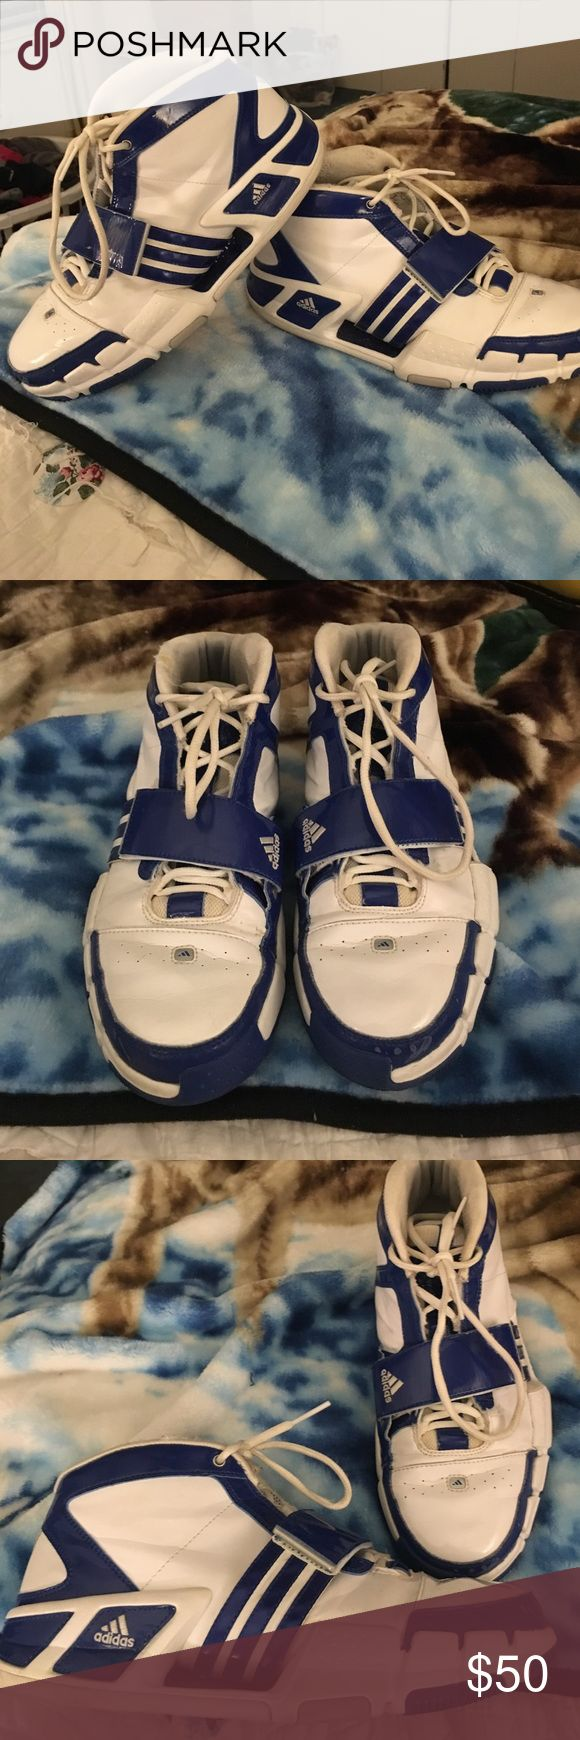 Basketball shoes Adidas basketball shoe, good condition, super clean. Adidas Shoes Athletic Shoes